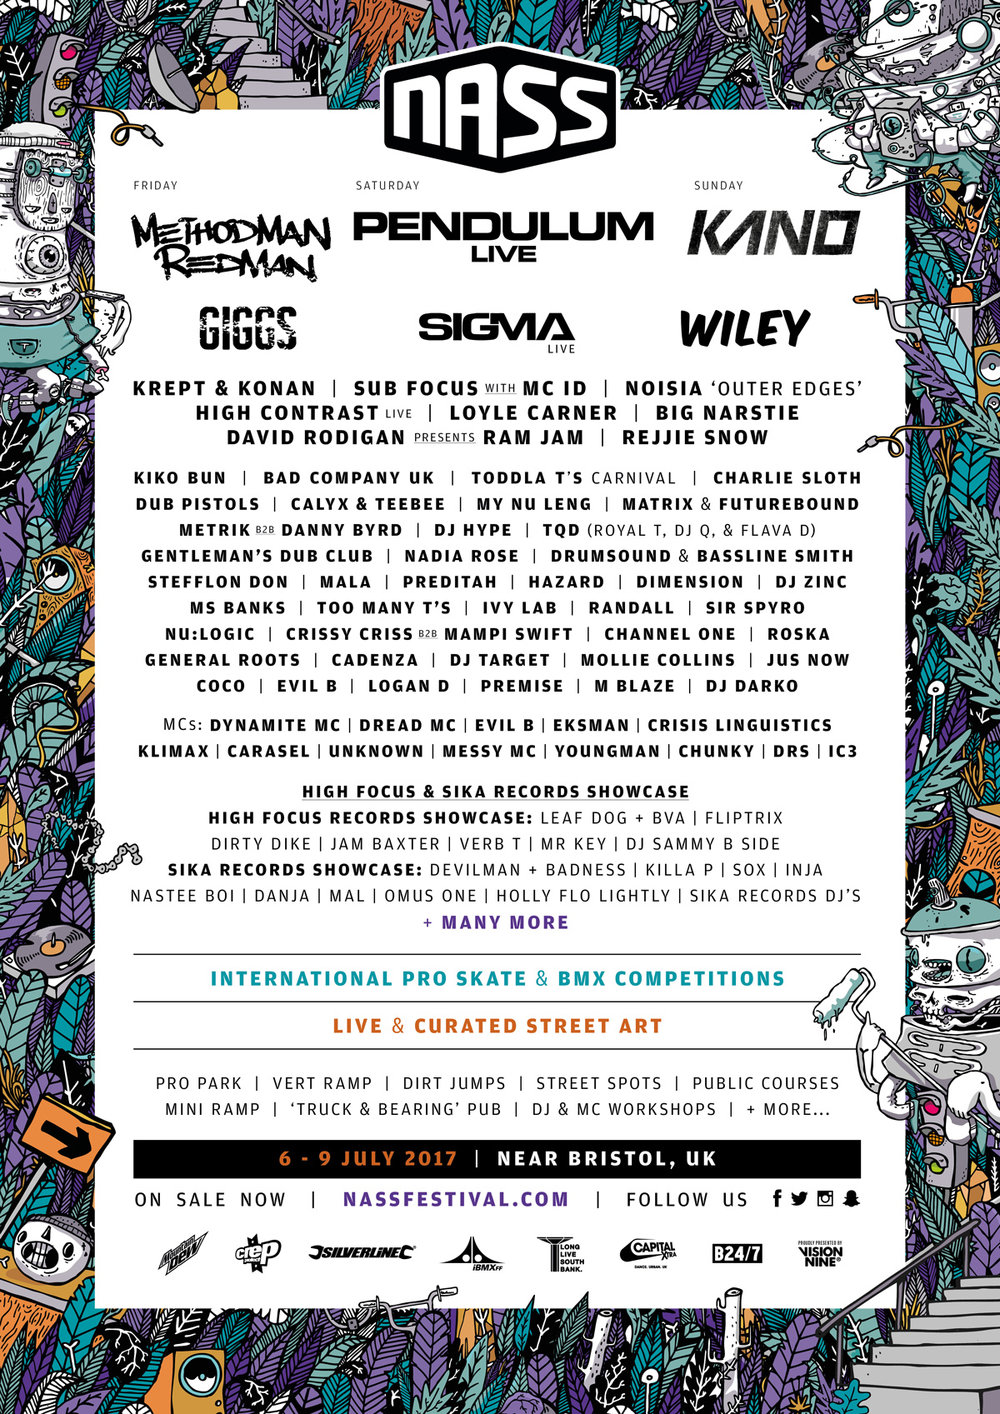 Lineup poster 2017